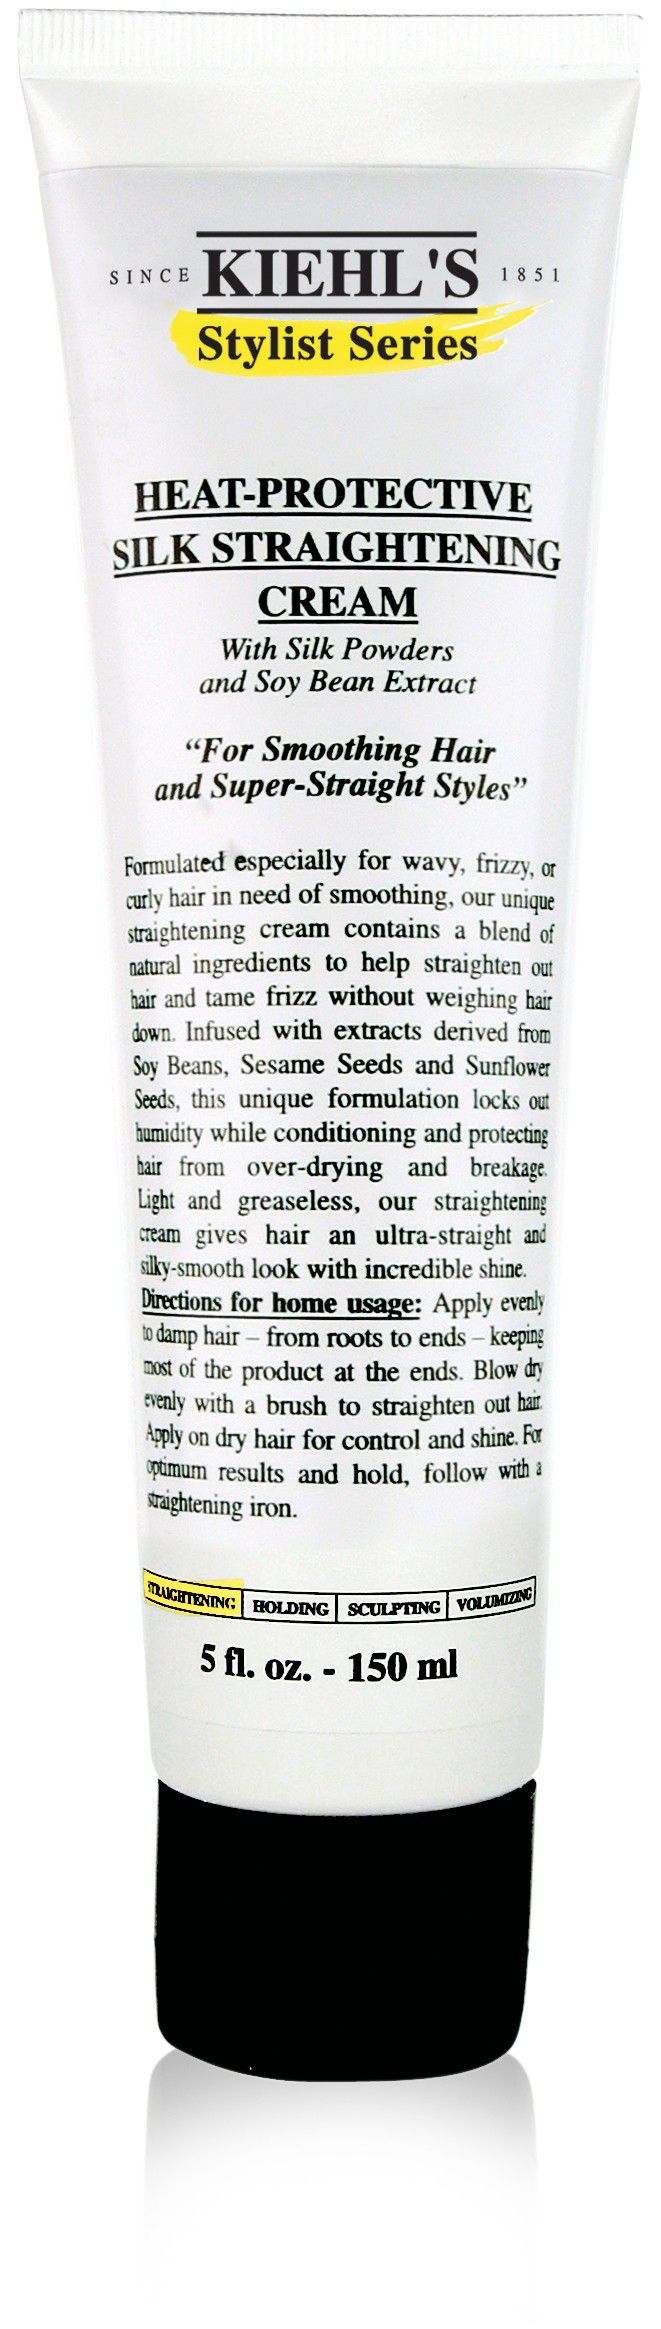 Kiehls HeatProtective Silk Straightening Cream 150ml